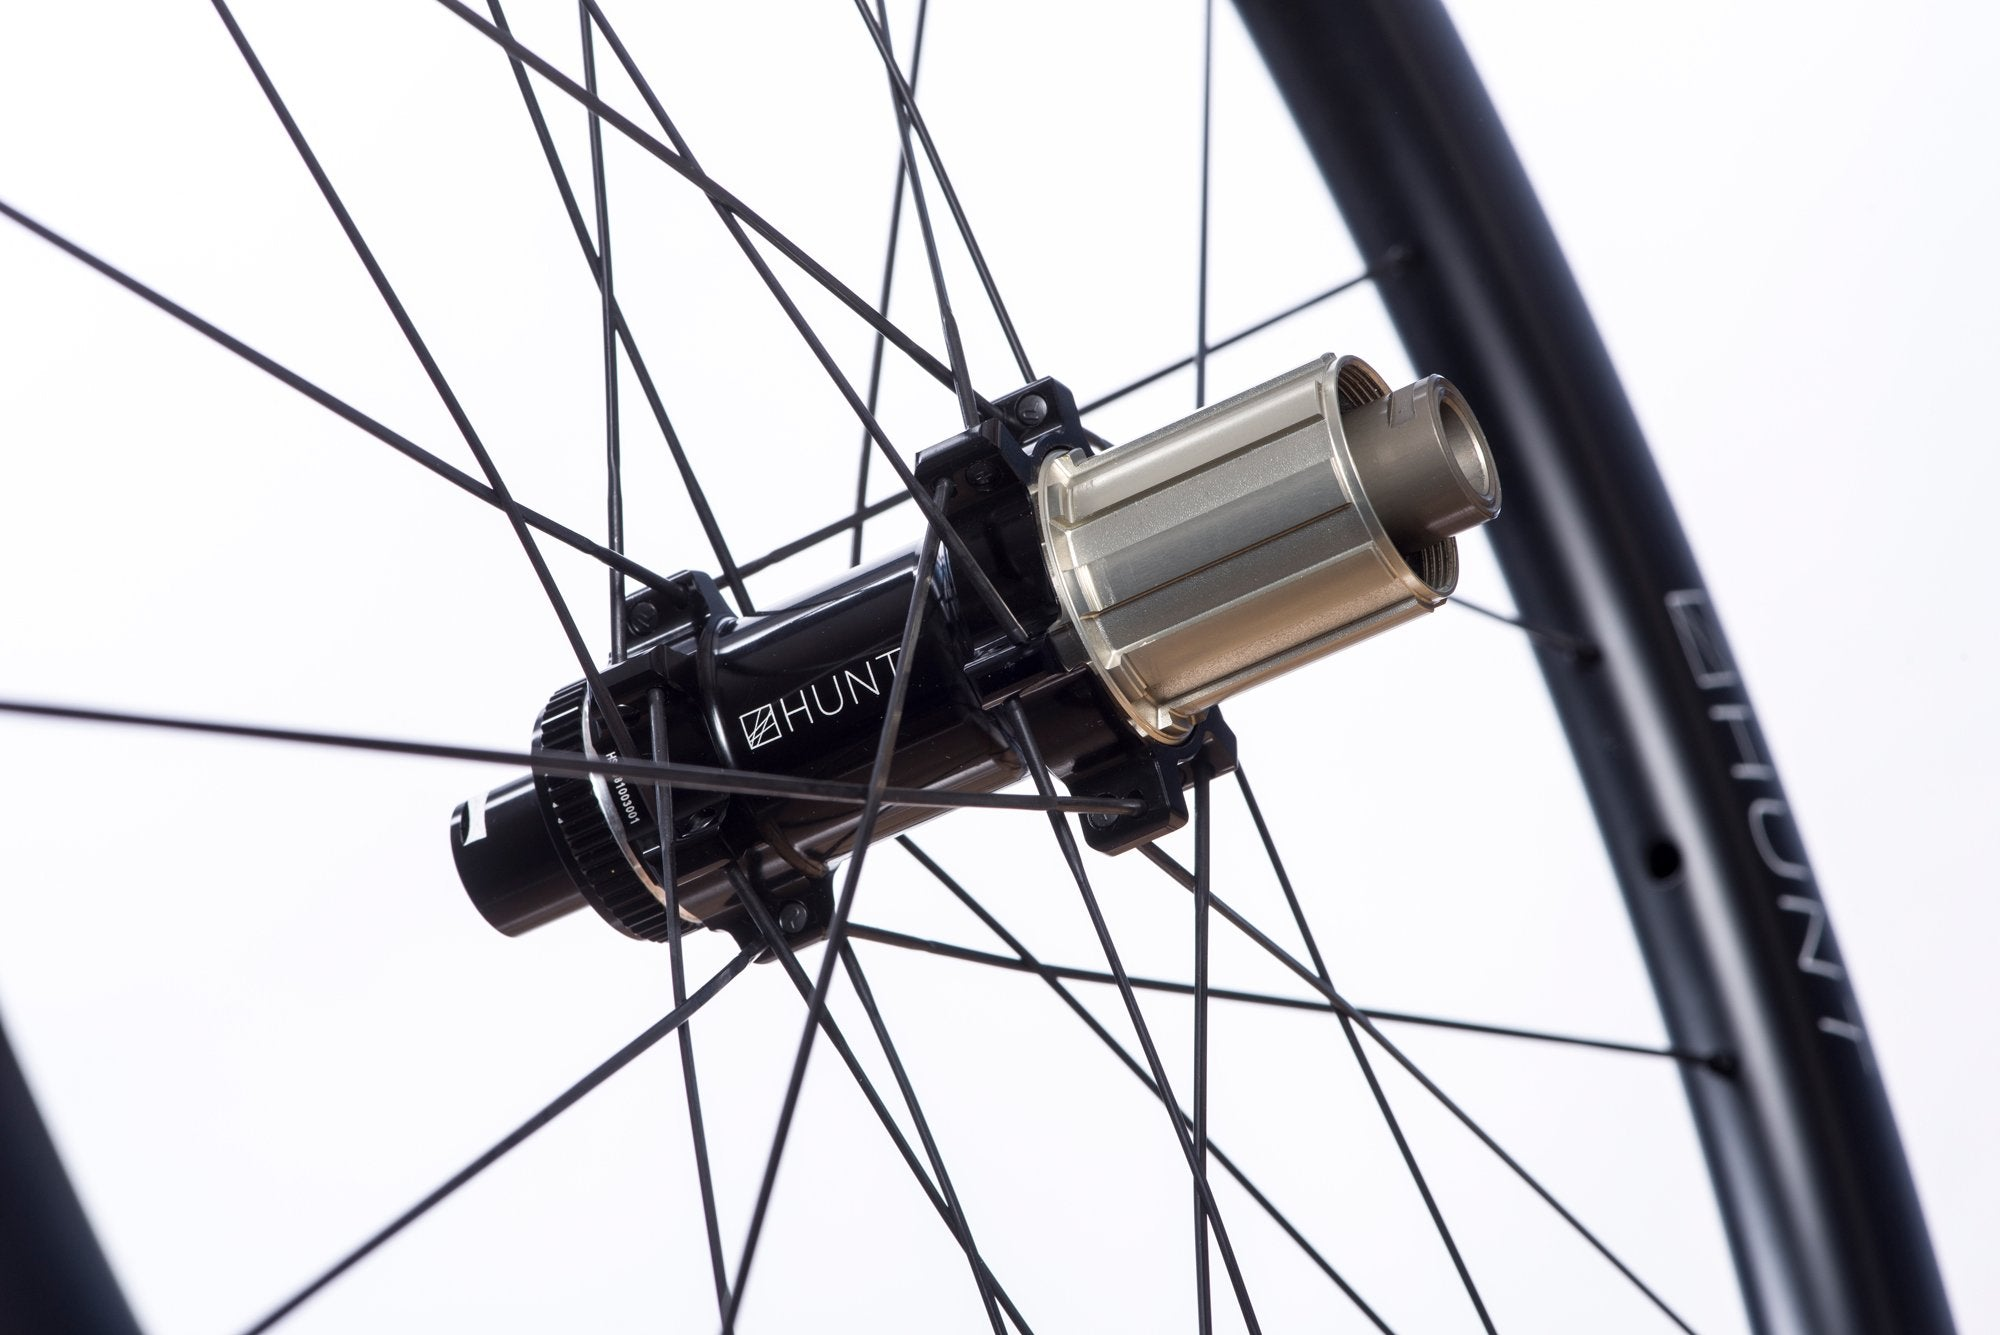 <h1>Freehub Body</h1><i>Featuring a 3 multi-point pawls with 3 teeth each and a 48 tooth ratchet ring results in an impressively low 7.5 degree engagement angle and excellent resistance to wear under heavy loads. The Sprint freehub has strong individual pawl springs which engage quicker. There is also a Steel Spline Insert re-enforcement to provide excellent durability against cassette sprocket damage often seen on standard alloy freehub bodies.</i>